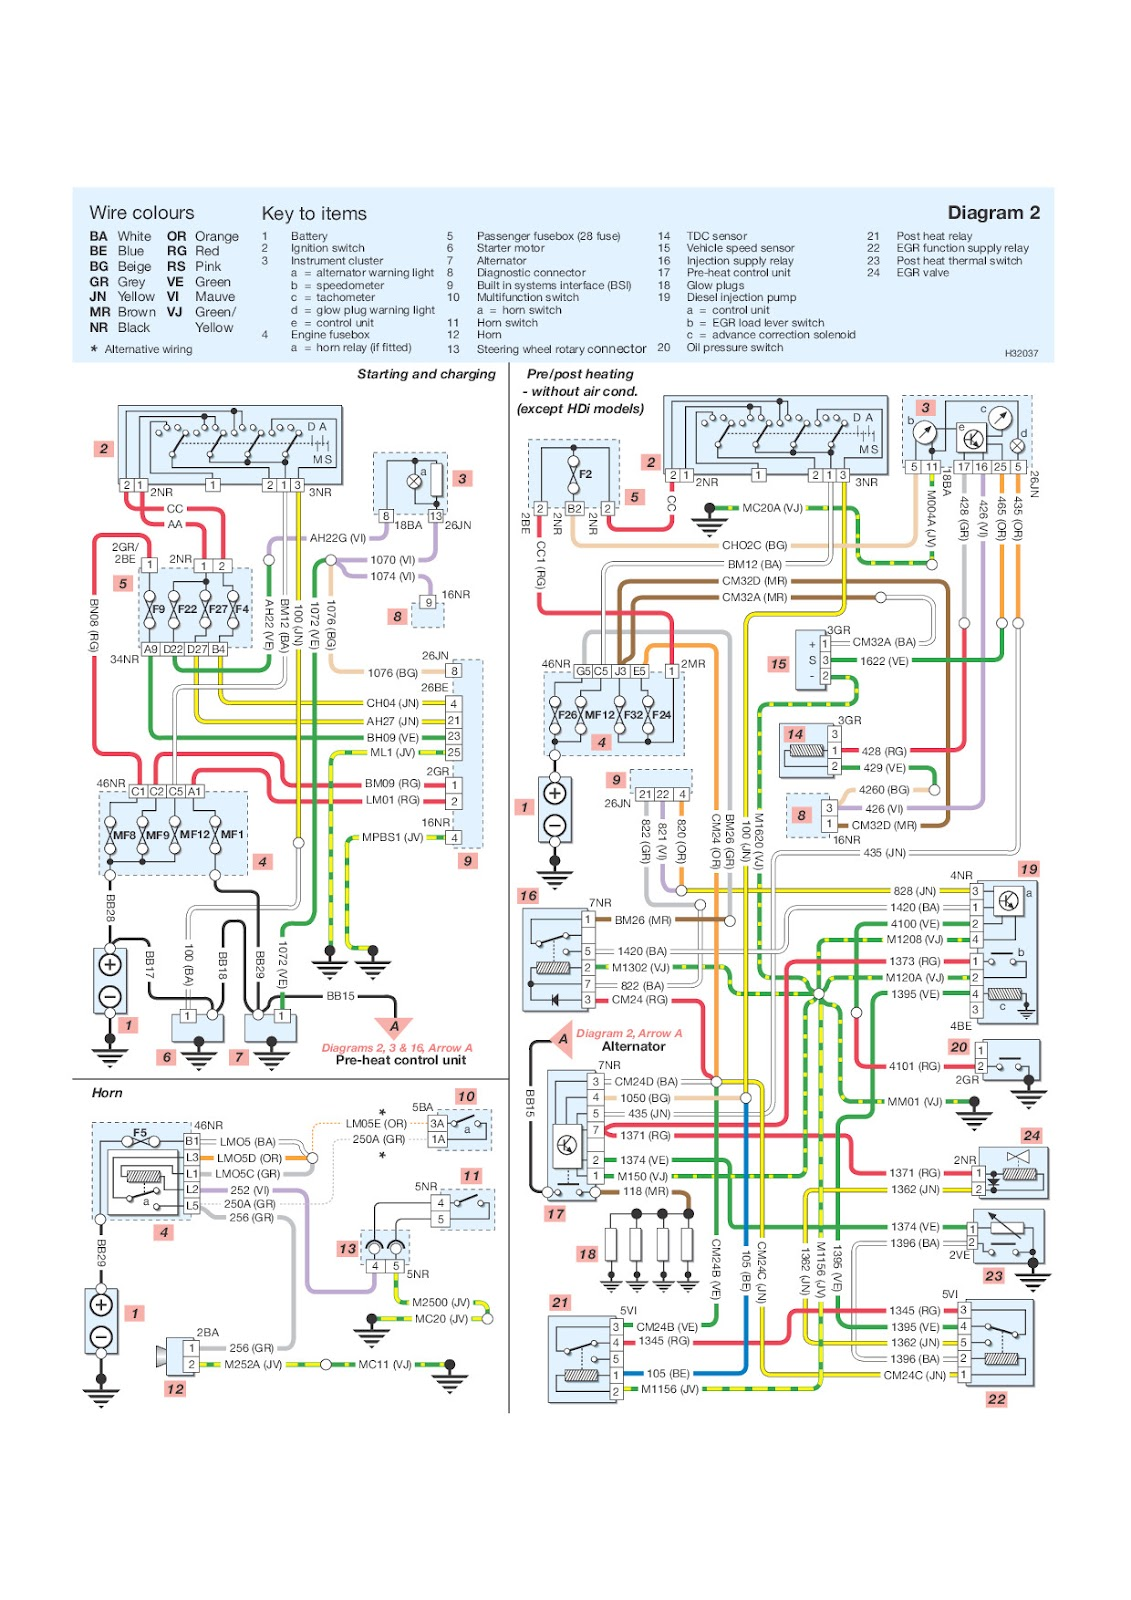 your wiring diagrams source peugeot 206 starting charging horn rh allwiringdiagrams blogspot com Charging System Wiring Diagram HVAC Fan Relay Wiring Diagram